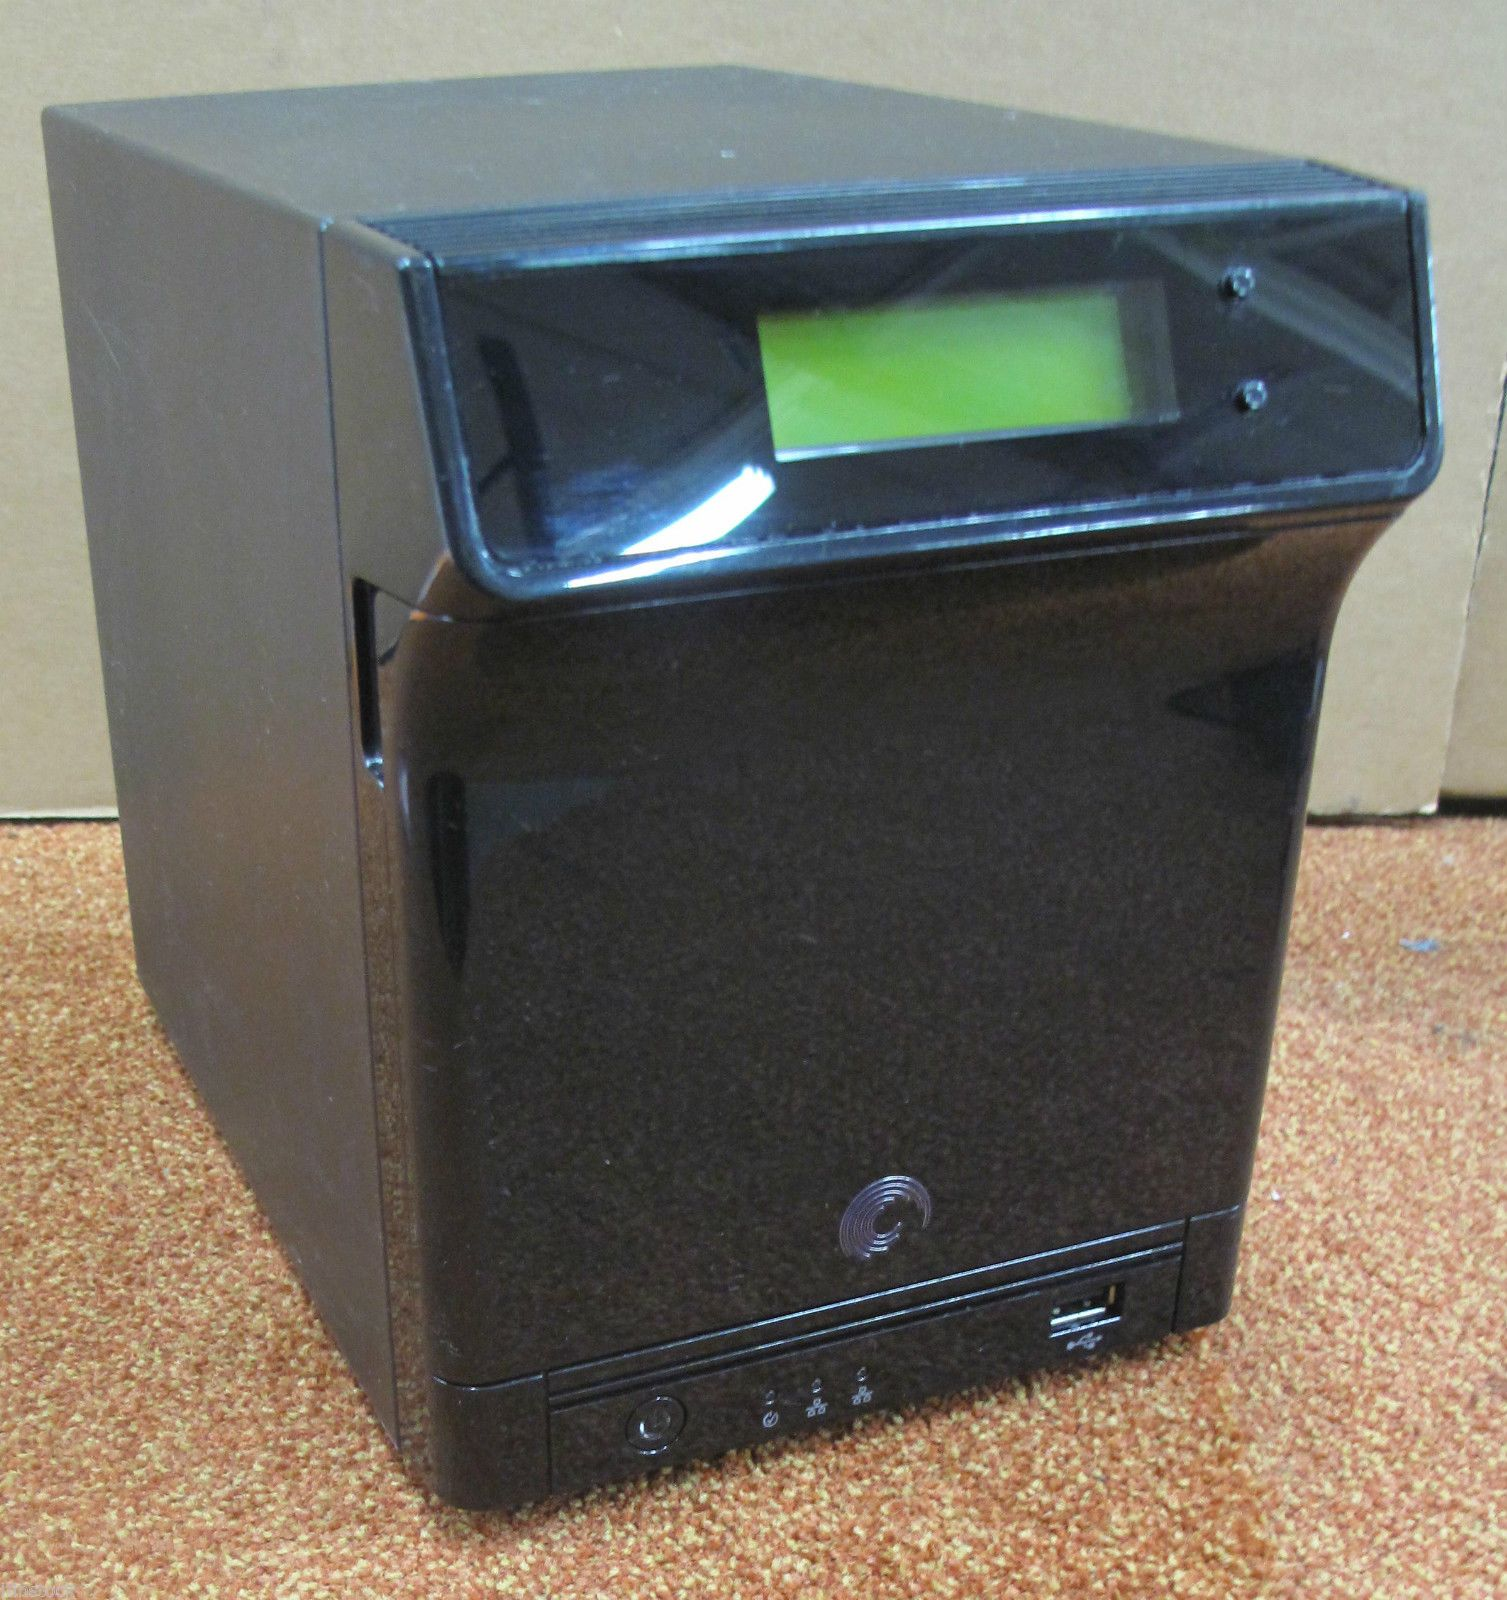 BLACKARMOR NAS 400 DRIVER PC